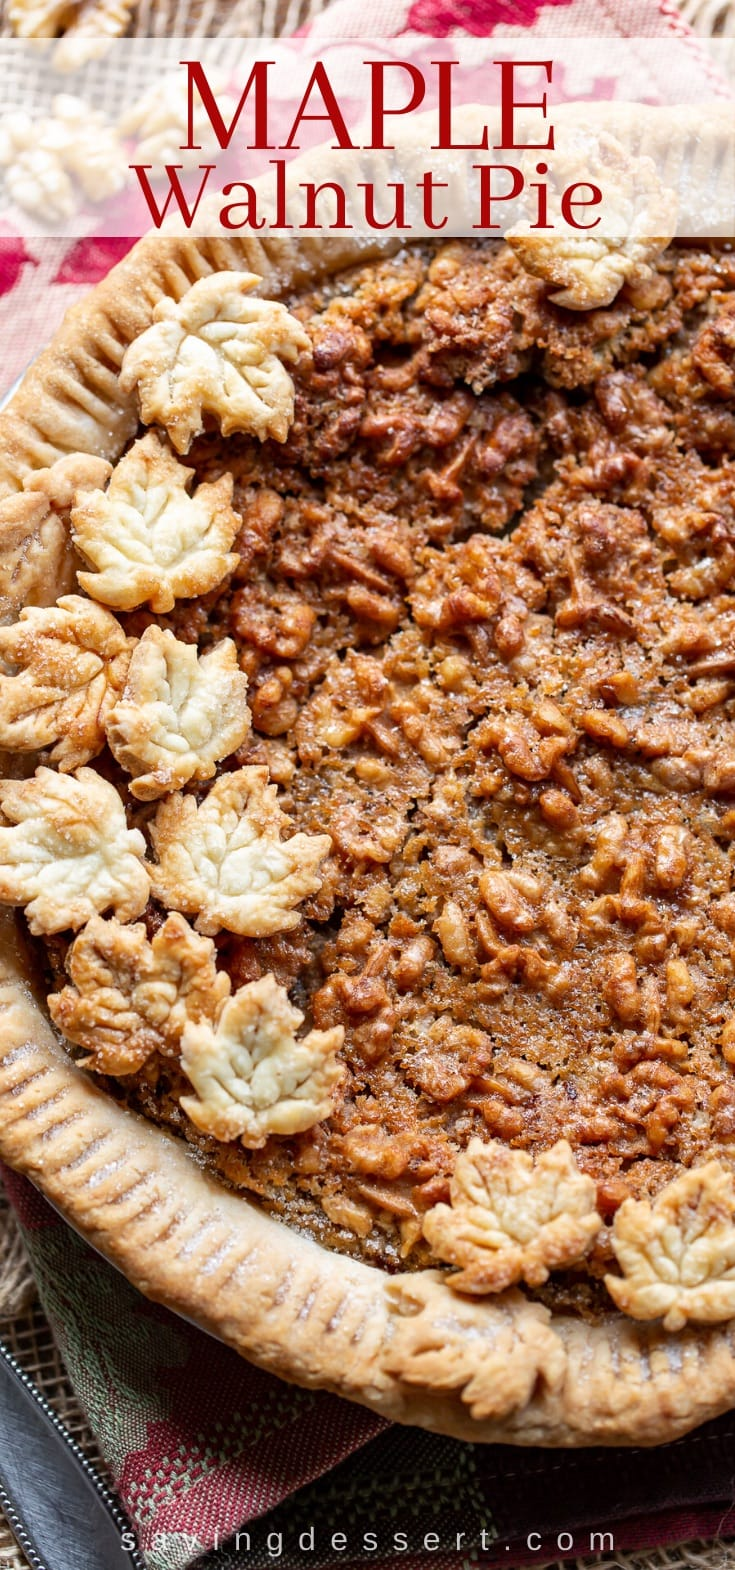 A close up of a maple walnut pie topped with crust cookies in the shape of leaves